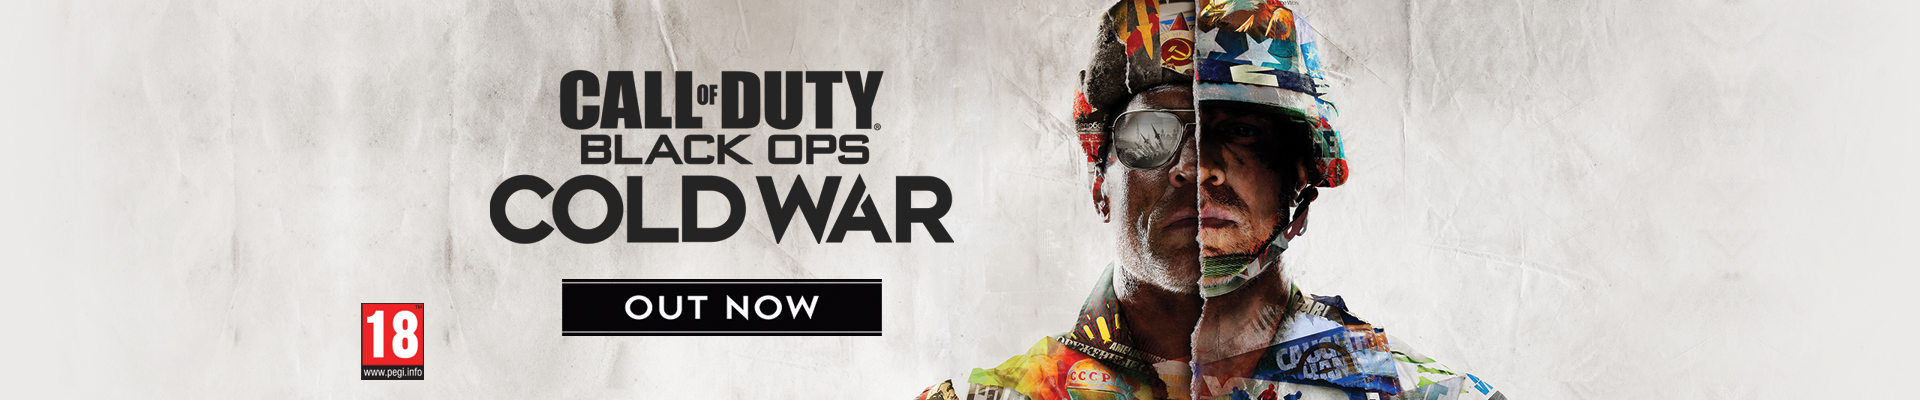 Call of Duty Black Ops Cold War Takeover